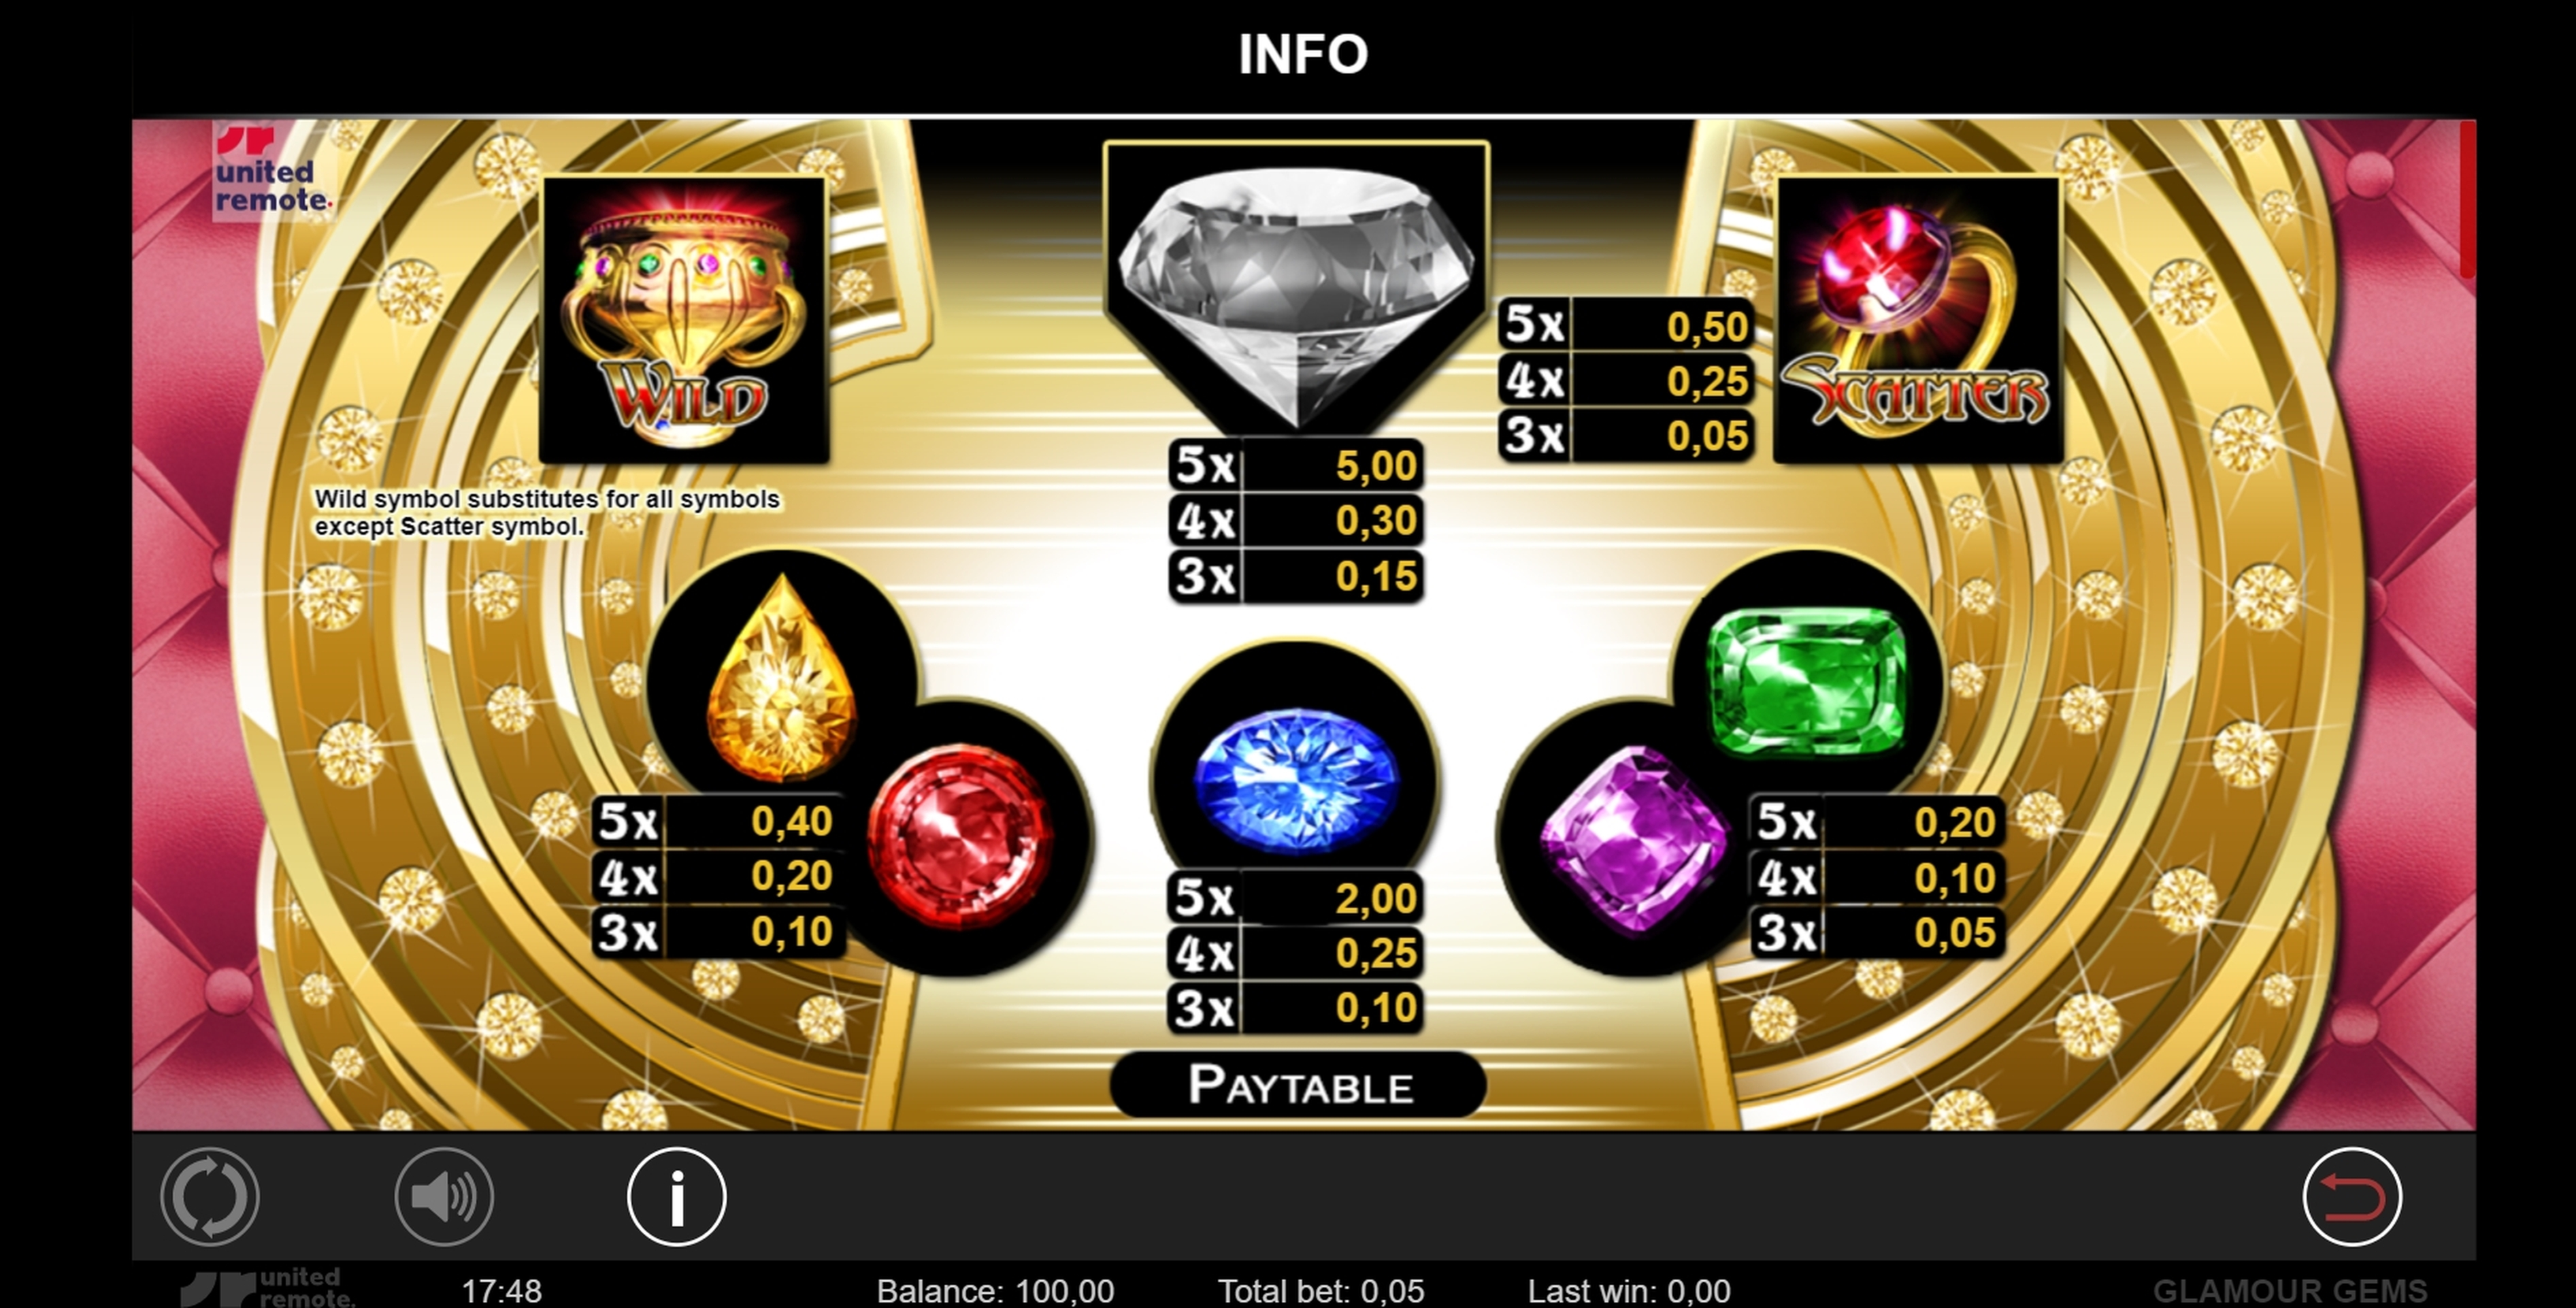 Info of Glamour Gems Slot Game by Lionline